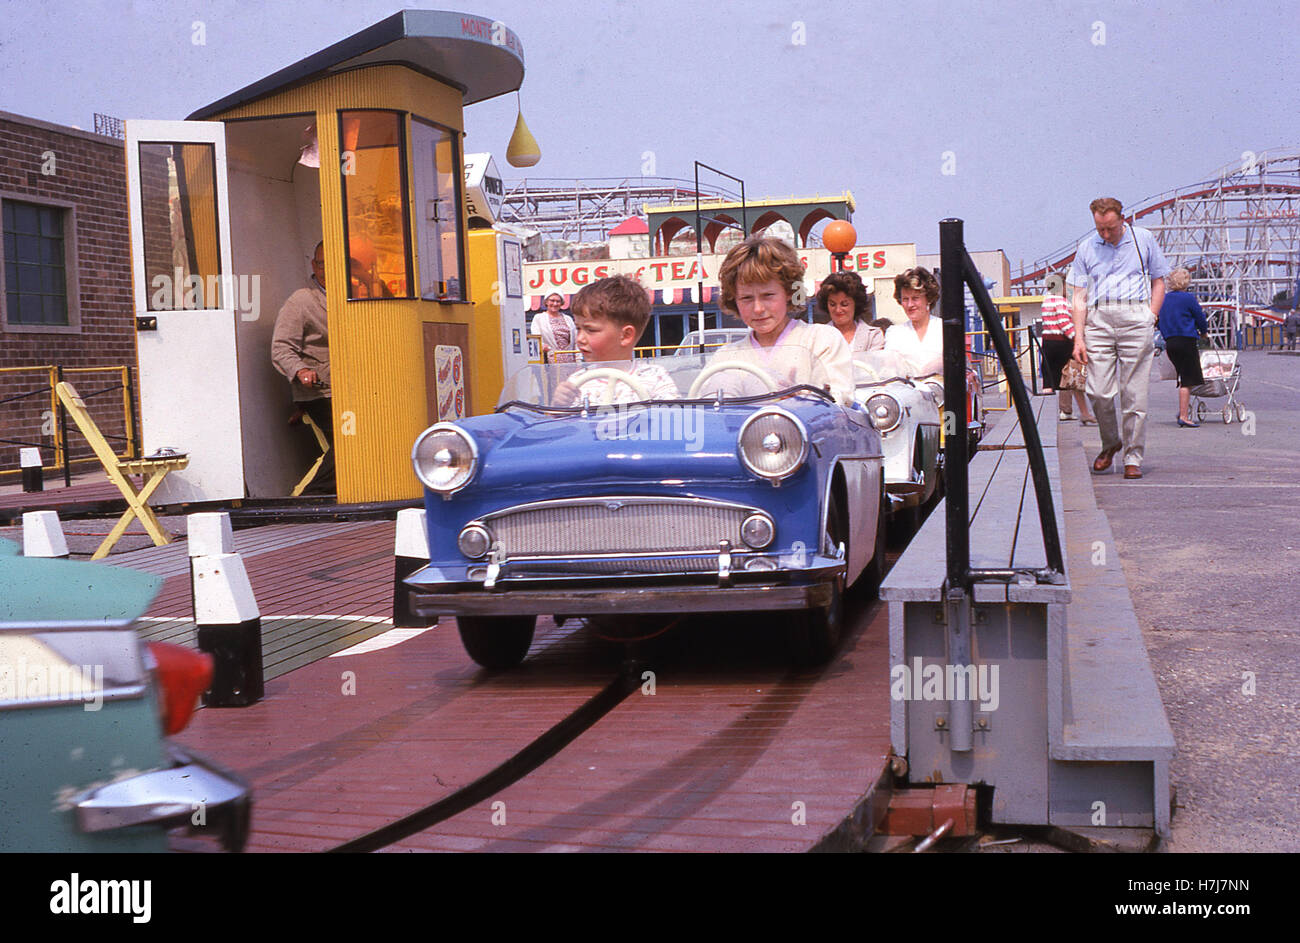 England, 1960s, two young children ride on a toy car at a British seaside funfair. In the background, a stall advertising - Stock Image